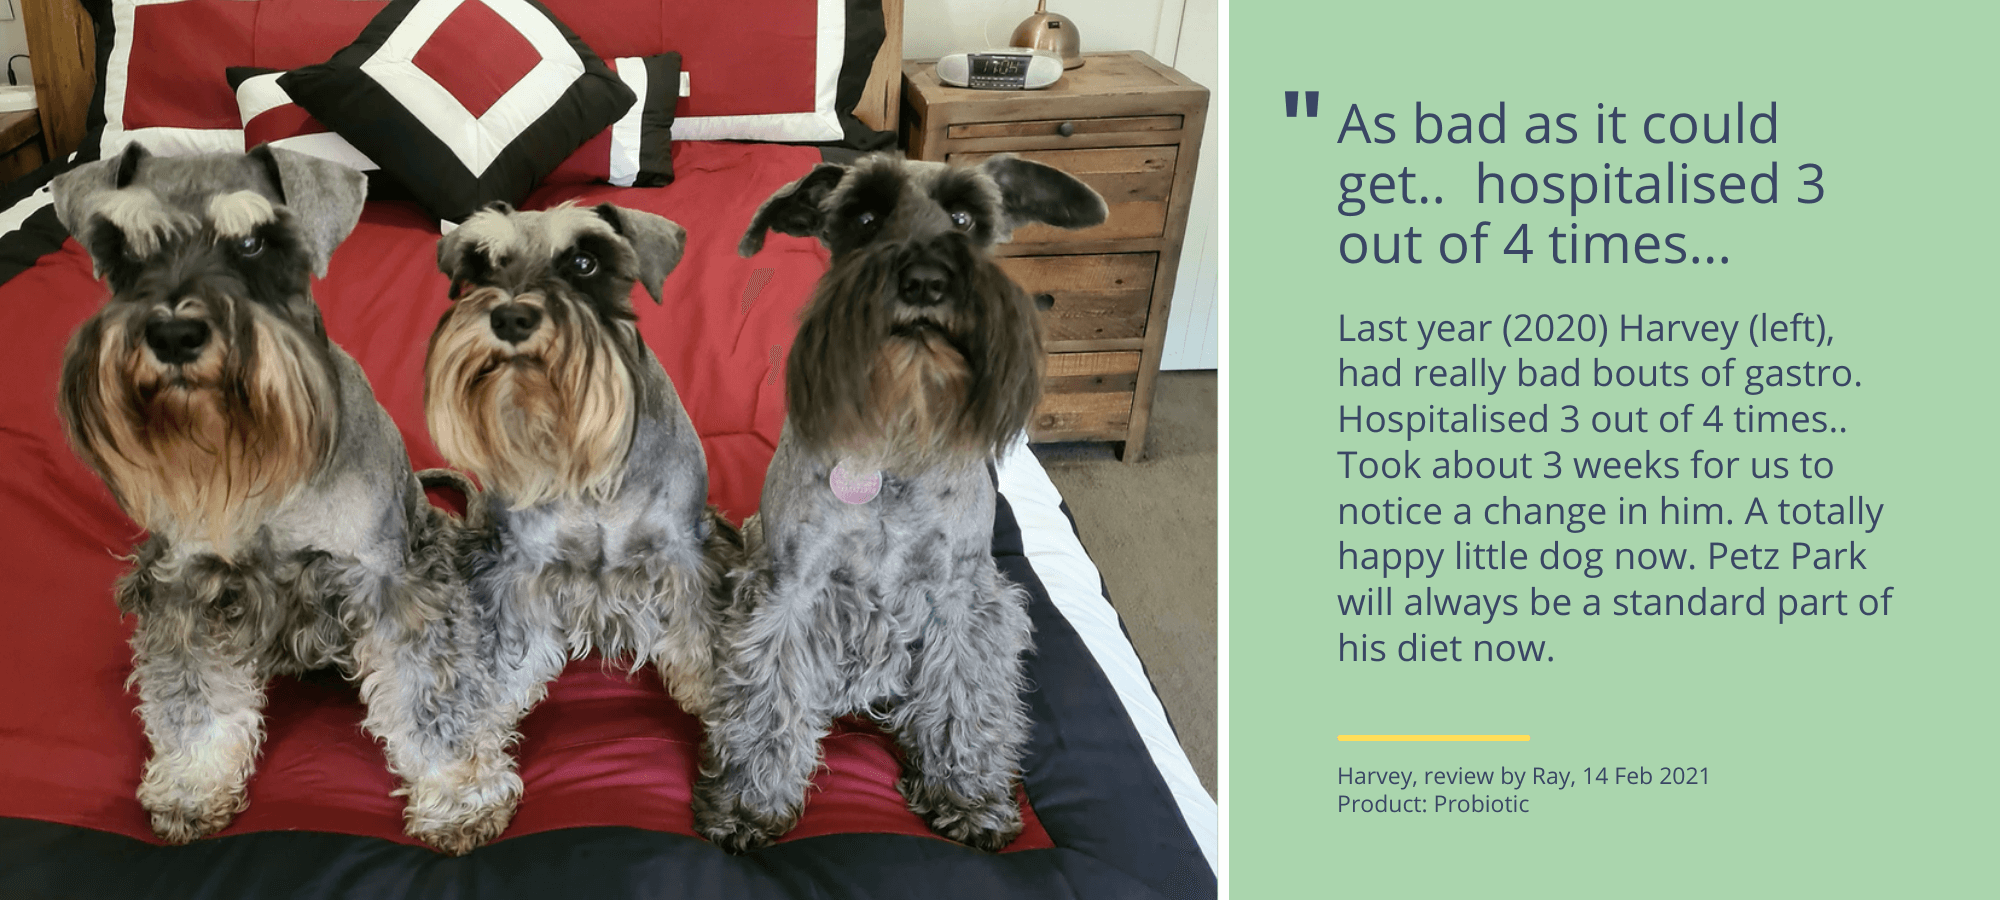 a customer review of Petz Park's Probiotics for dogs by a miniature schnauser's owner.